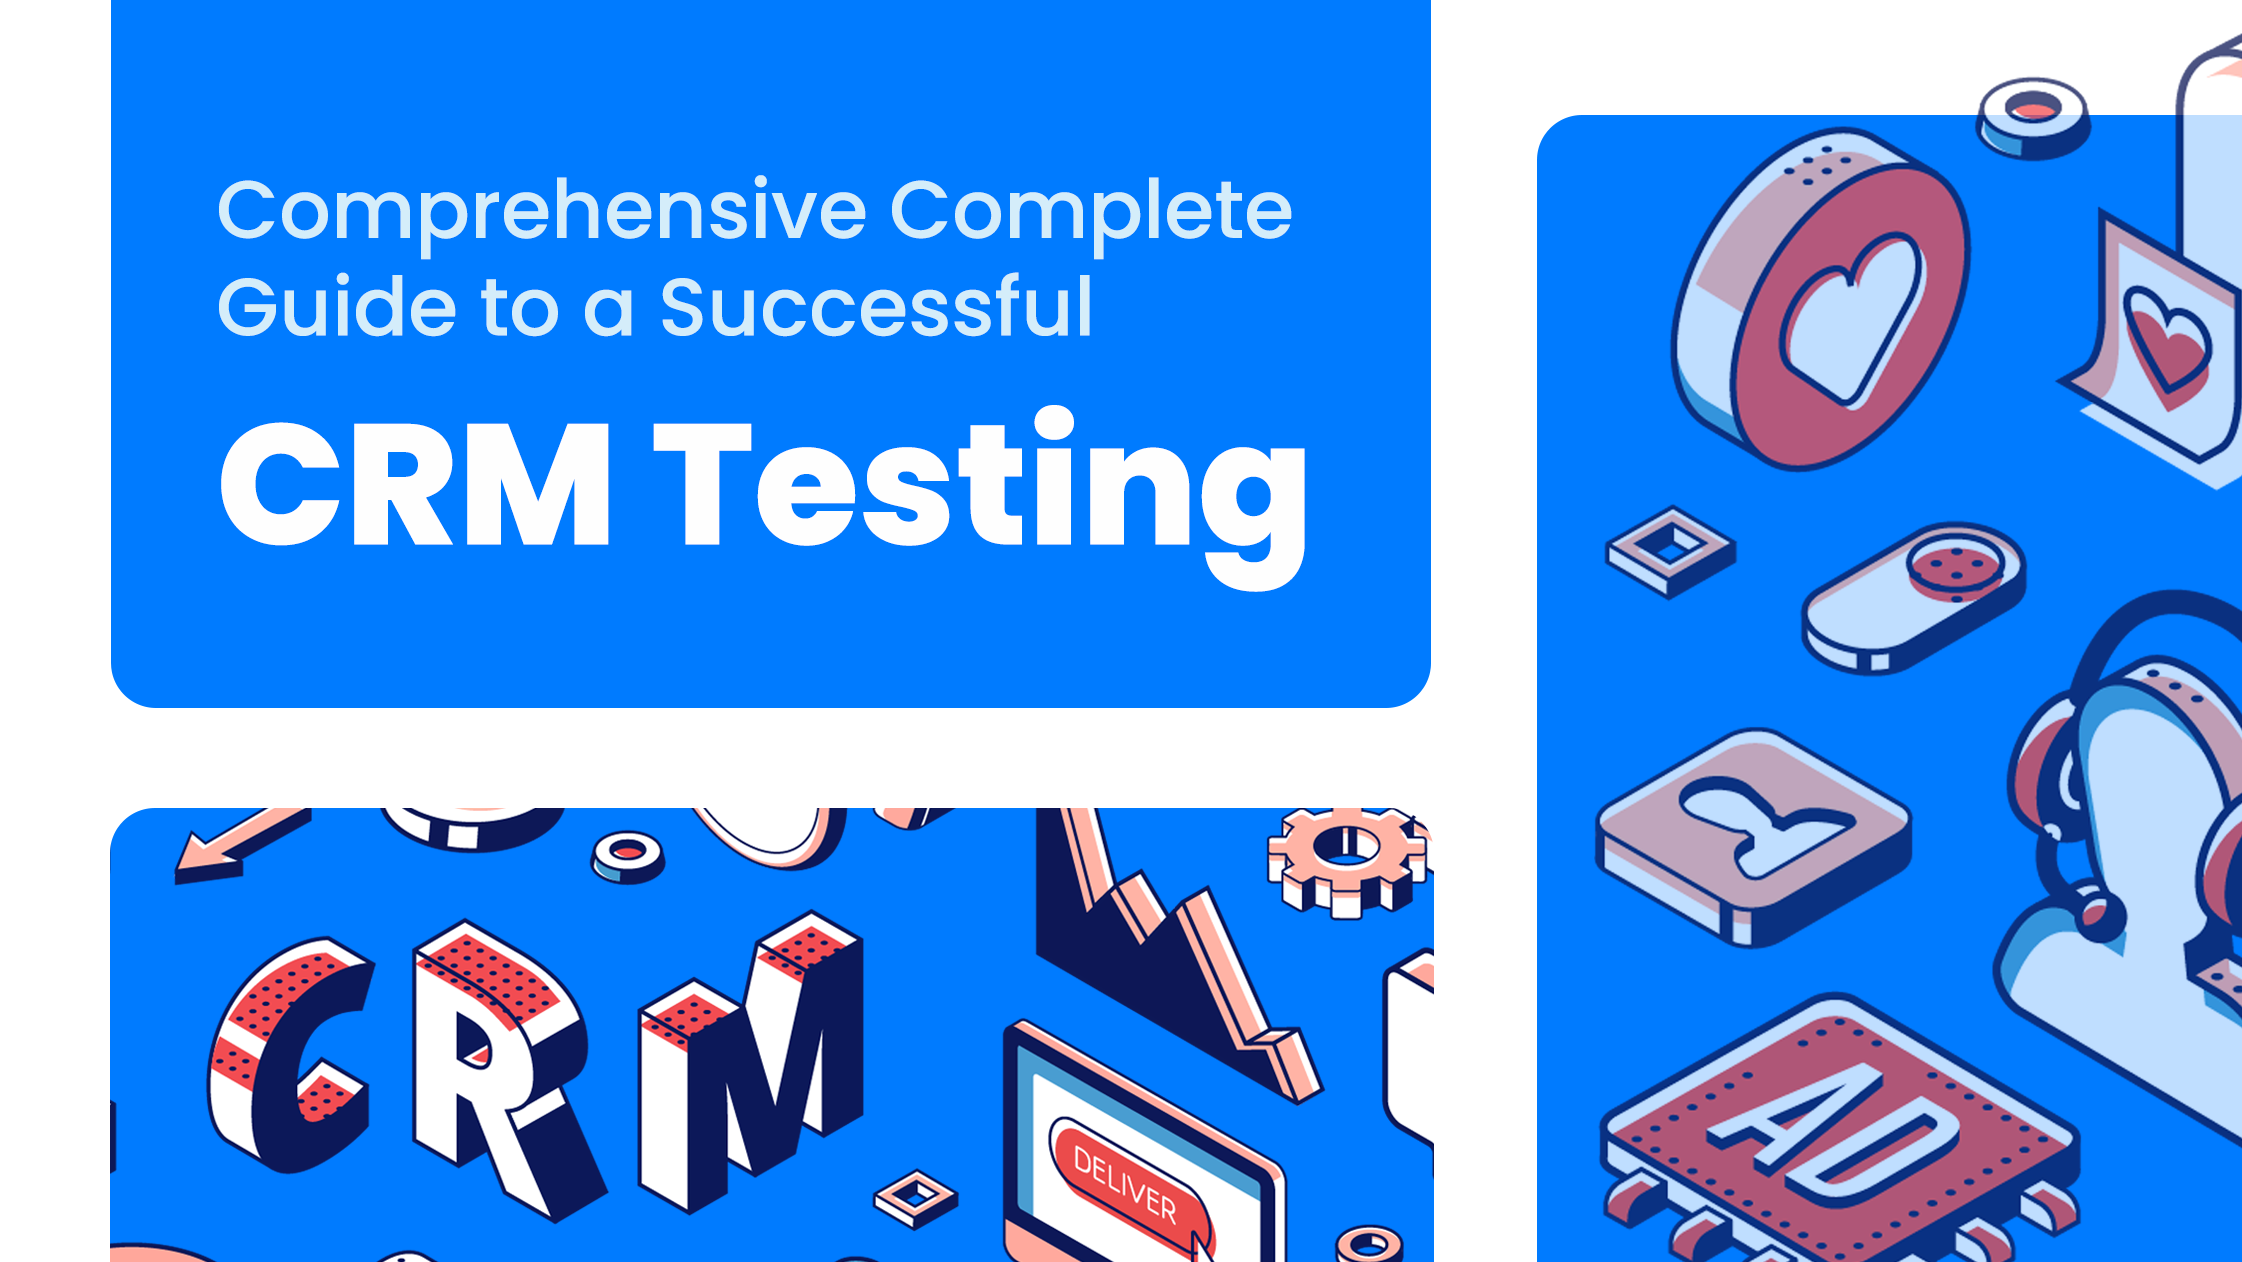 Guide to a Successful CRM Testing